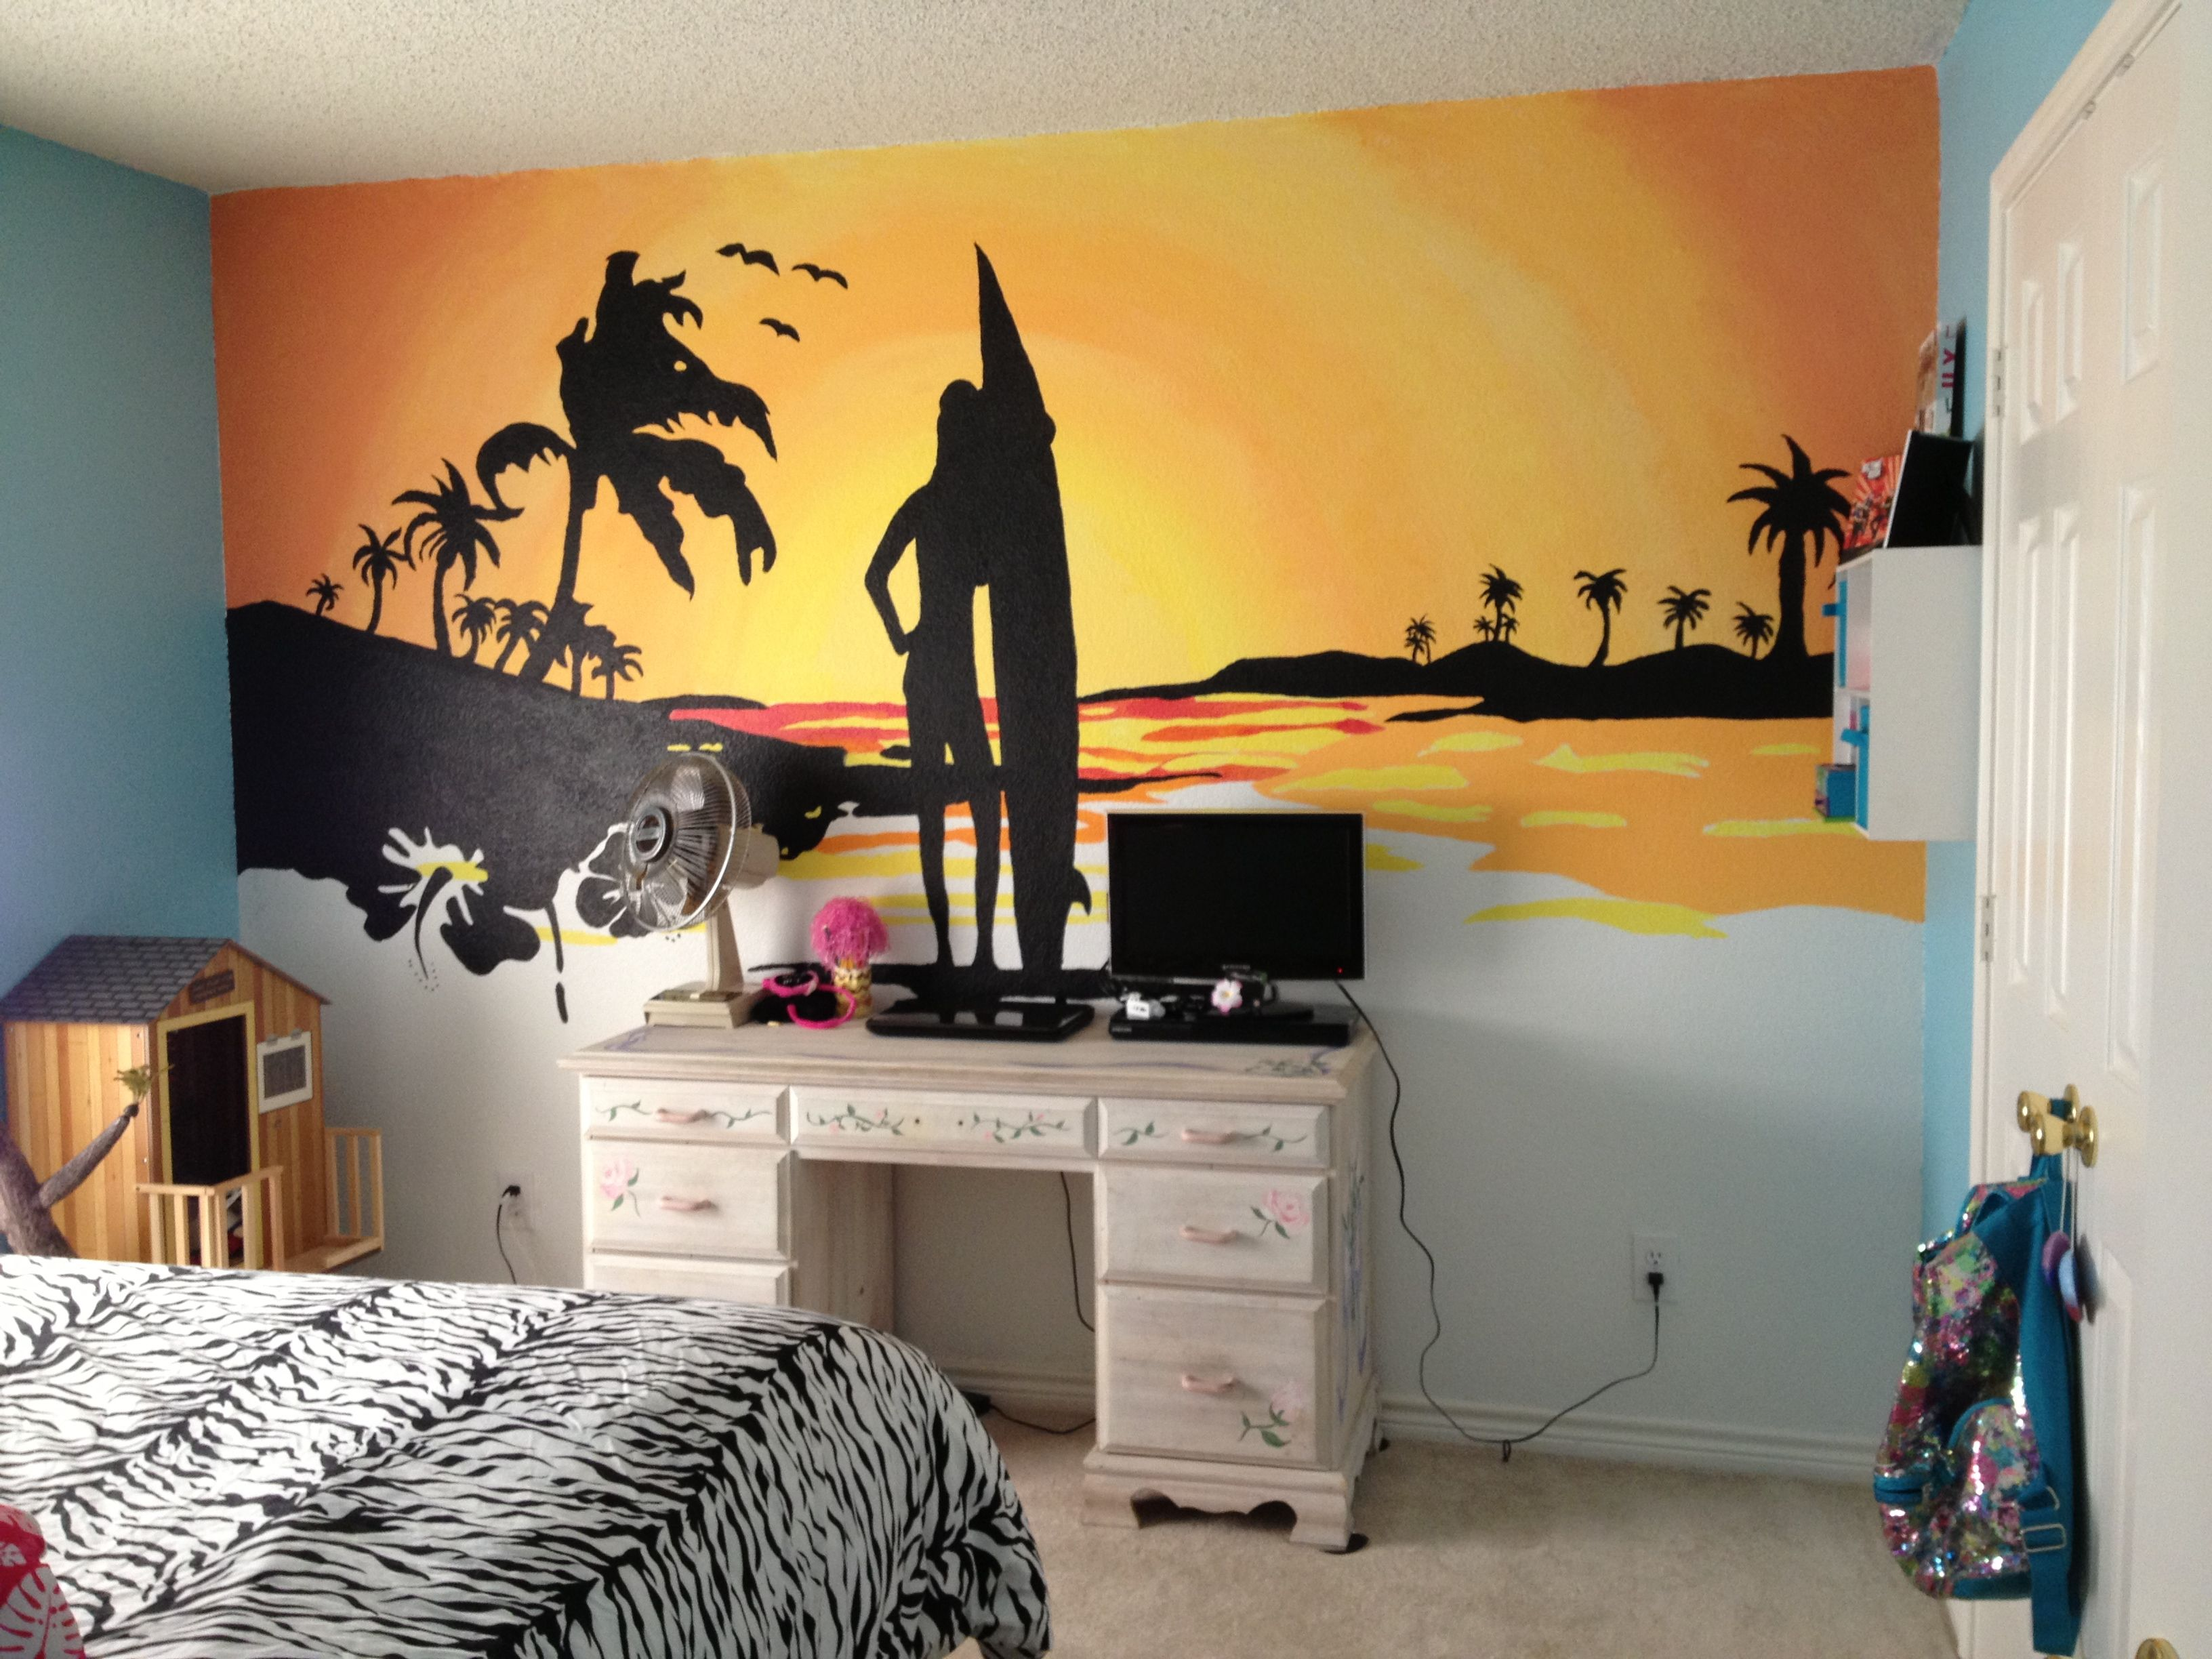 Superior Beach Sunset Mural My Husband And I Painted For My 10 Year Old Daughter  With Acrylic